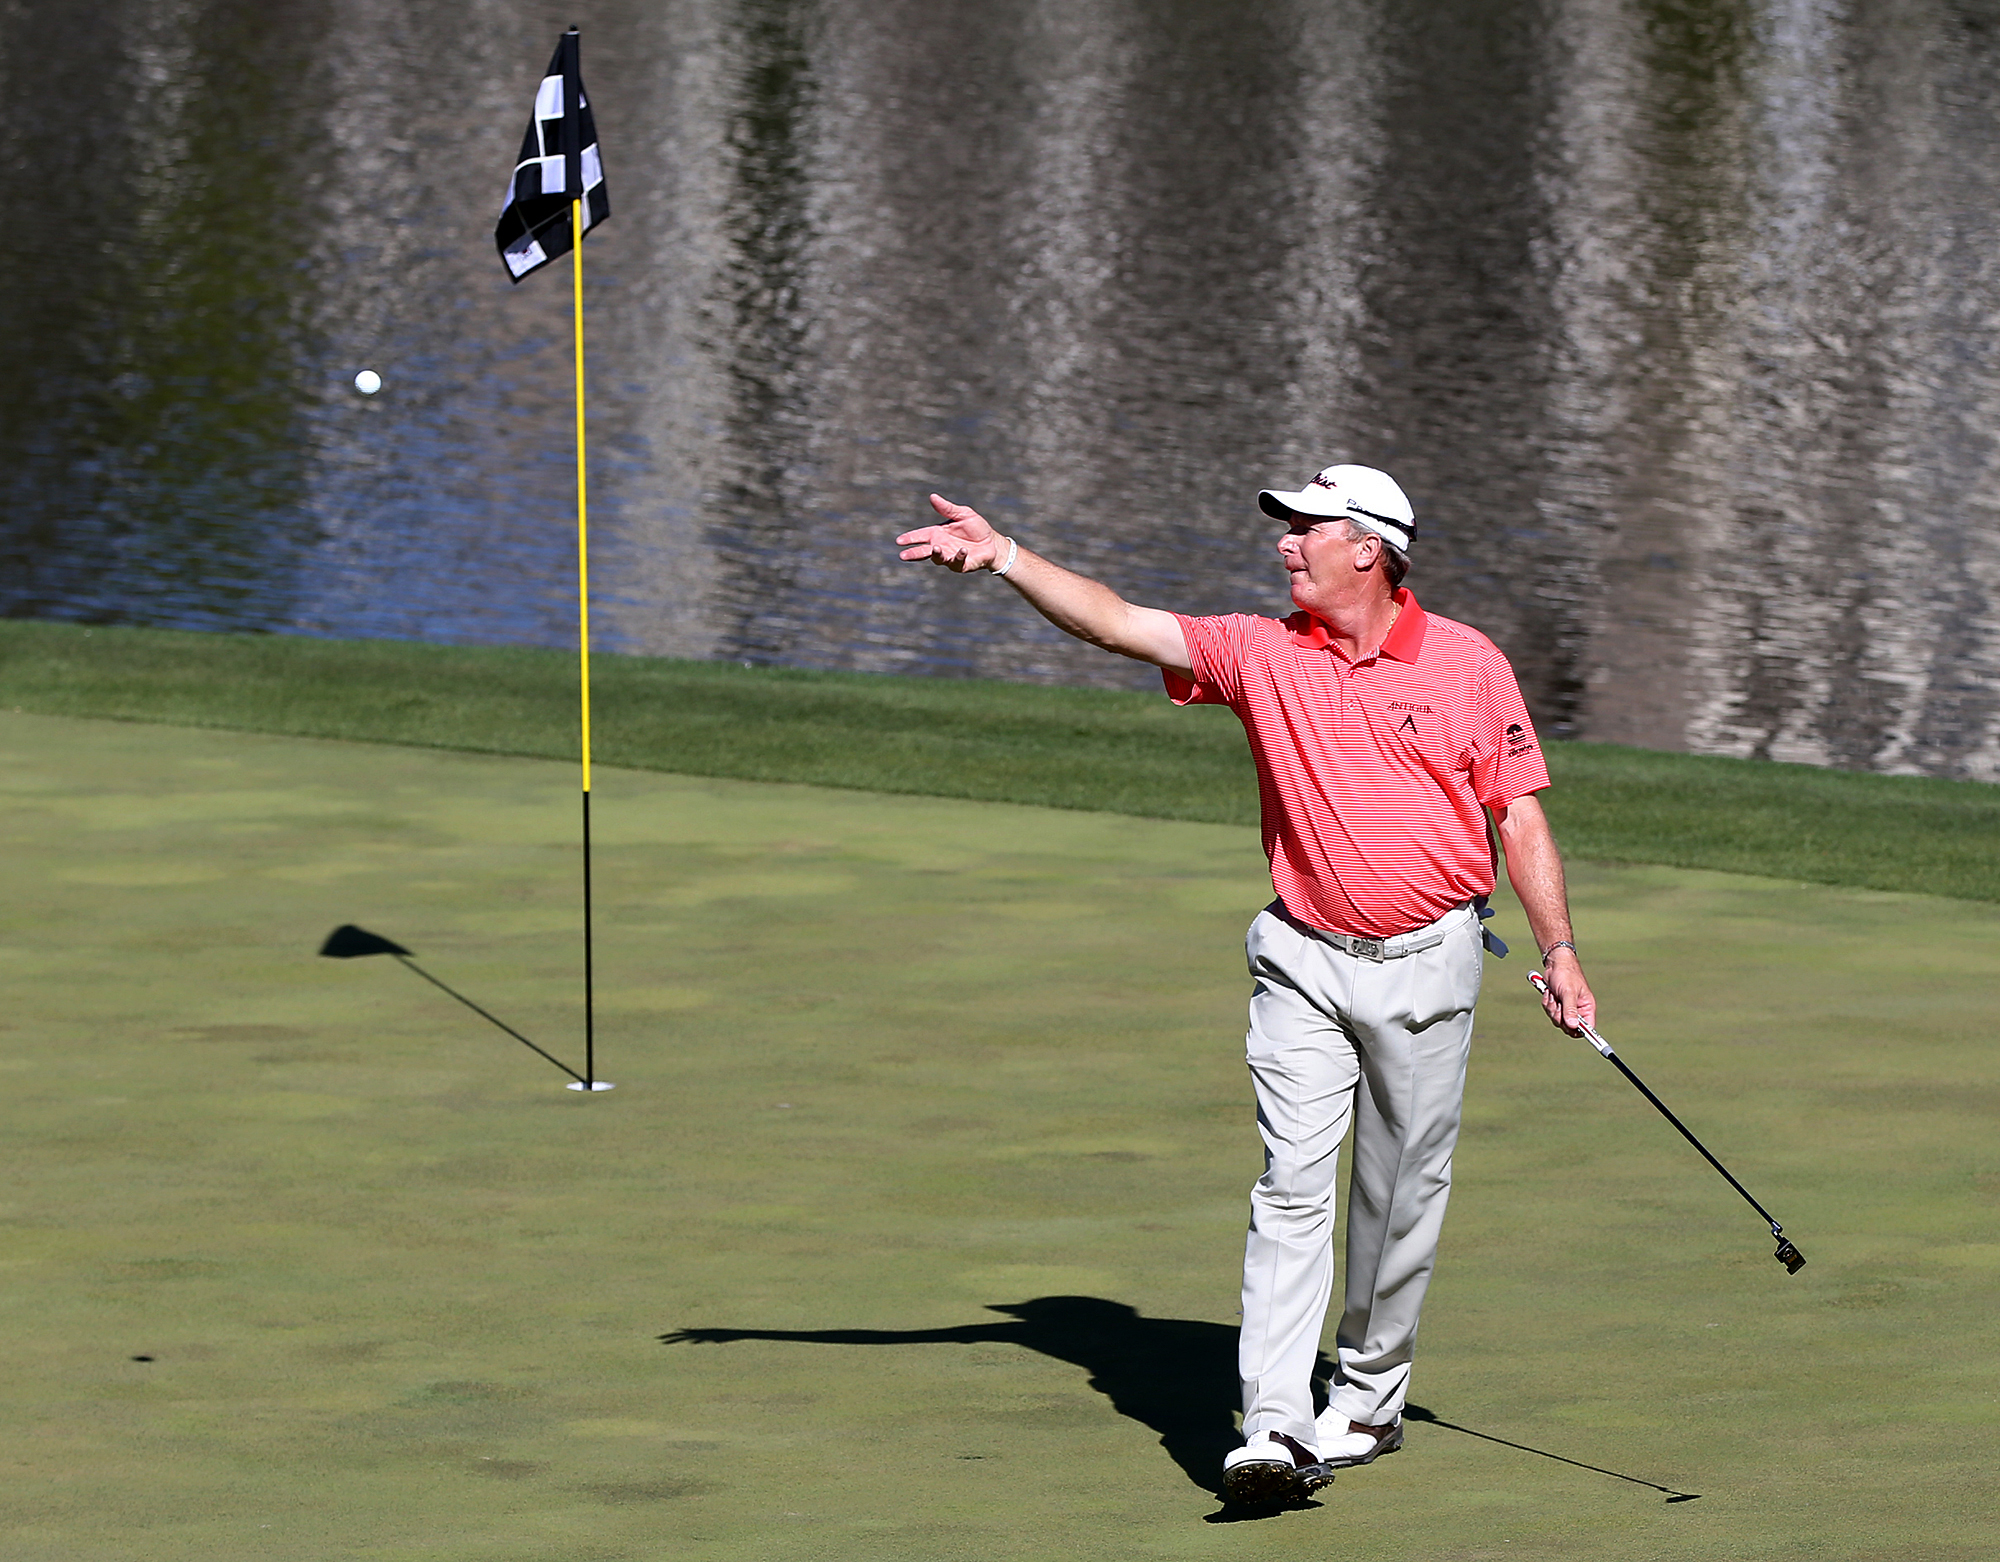 Woody Austin tosses his golf ball after making par on the 18th hole that resulted in a playoff with Wes Short Jr. during the PGA Tour Champions golf tournament at TPC Sugarloaf on Sunday, April 17, 2016, in Duluth, Ga. Austin tied the tournament record wi